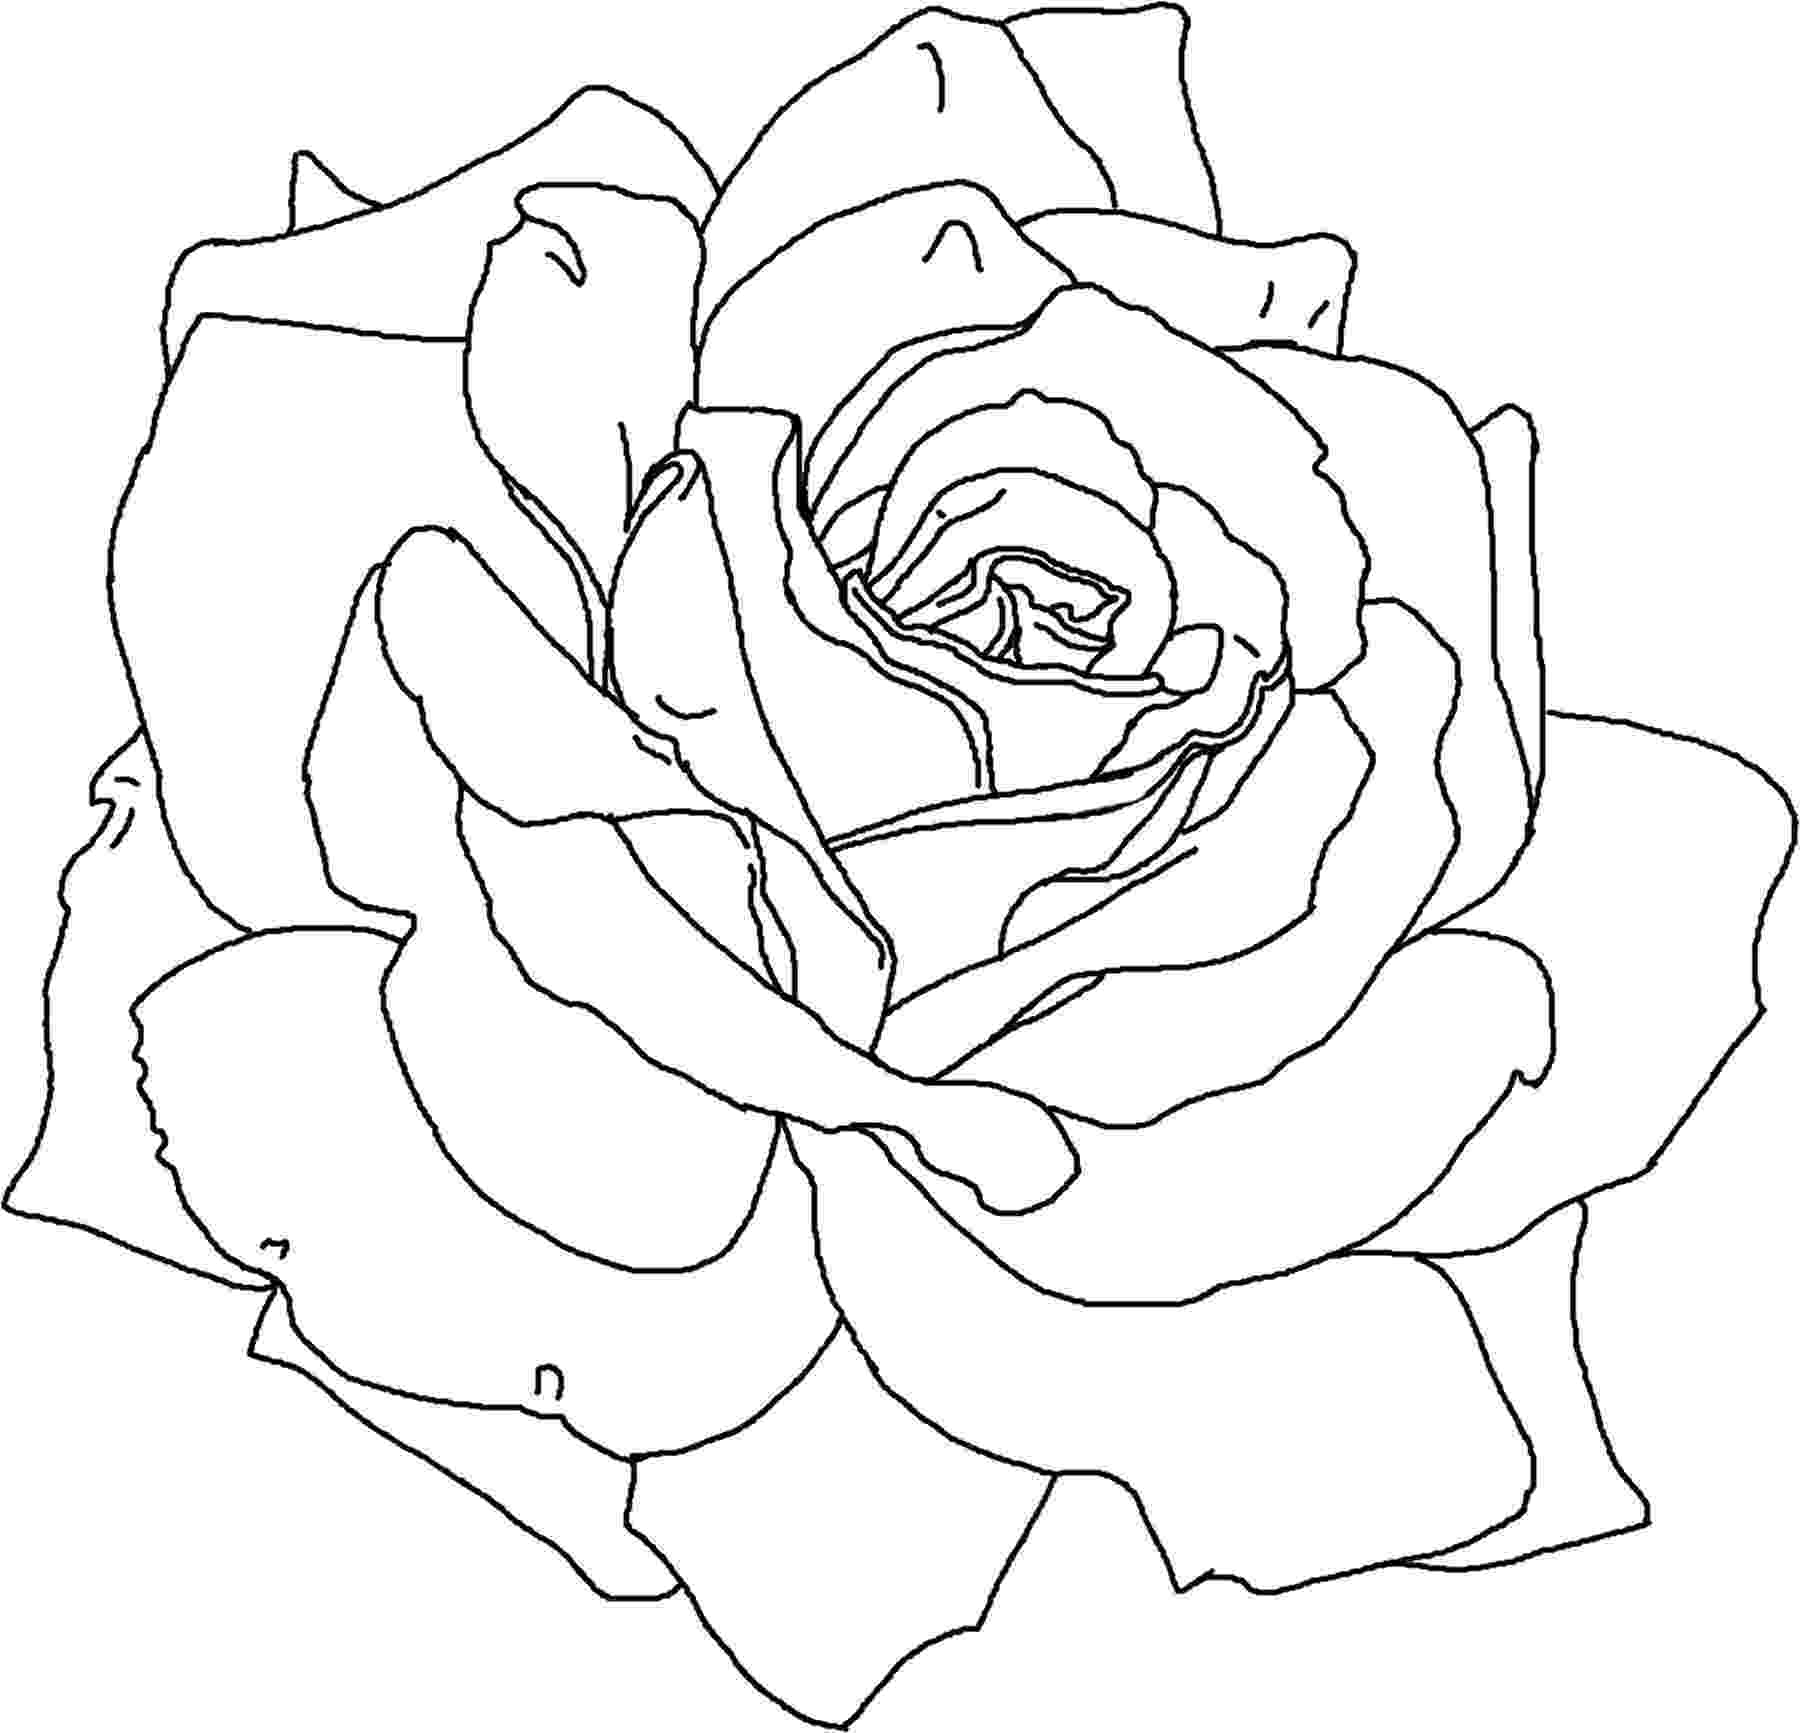 flowers coloring pages printable vintage flower coloring pages on behance flowers printable coloring pages